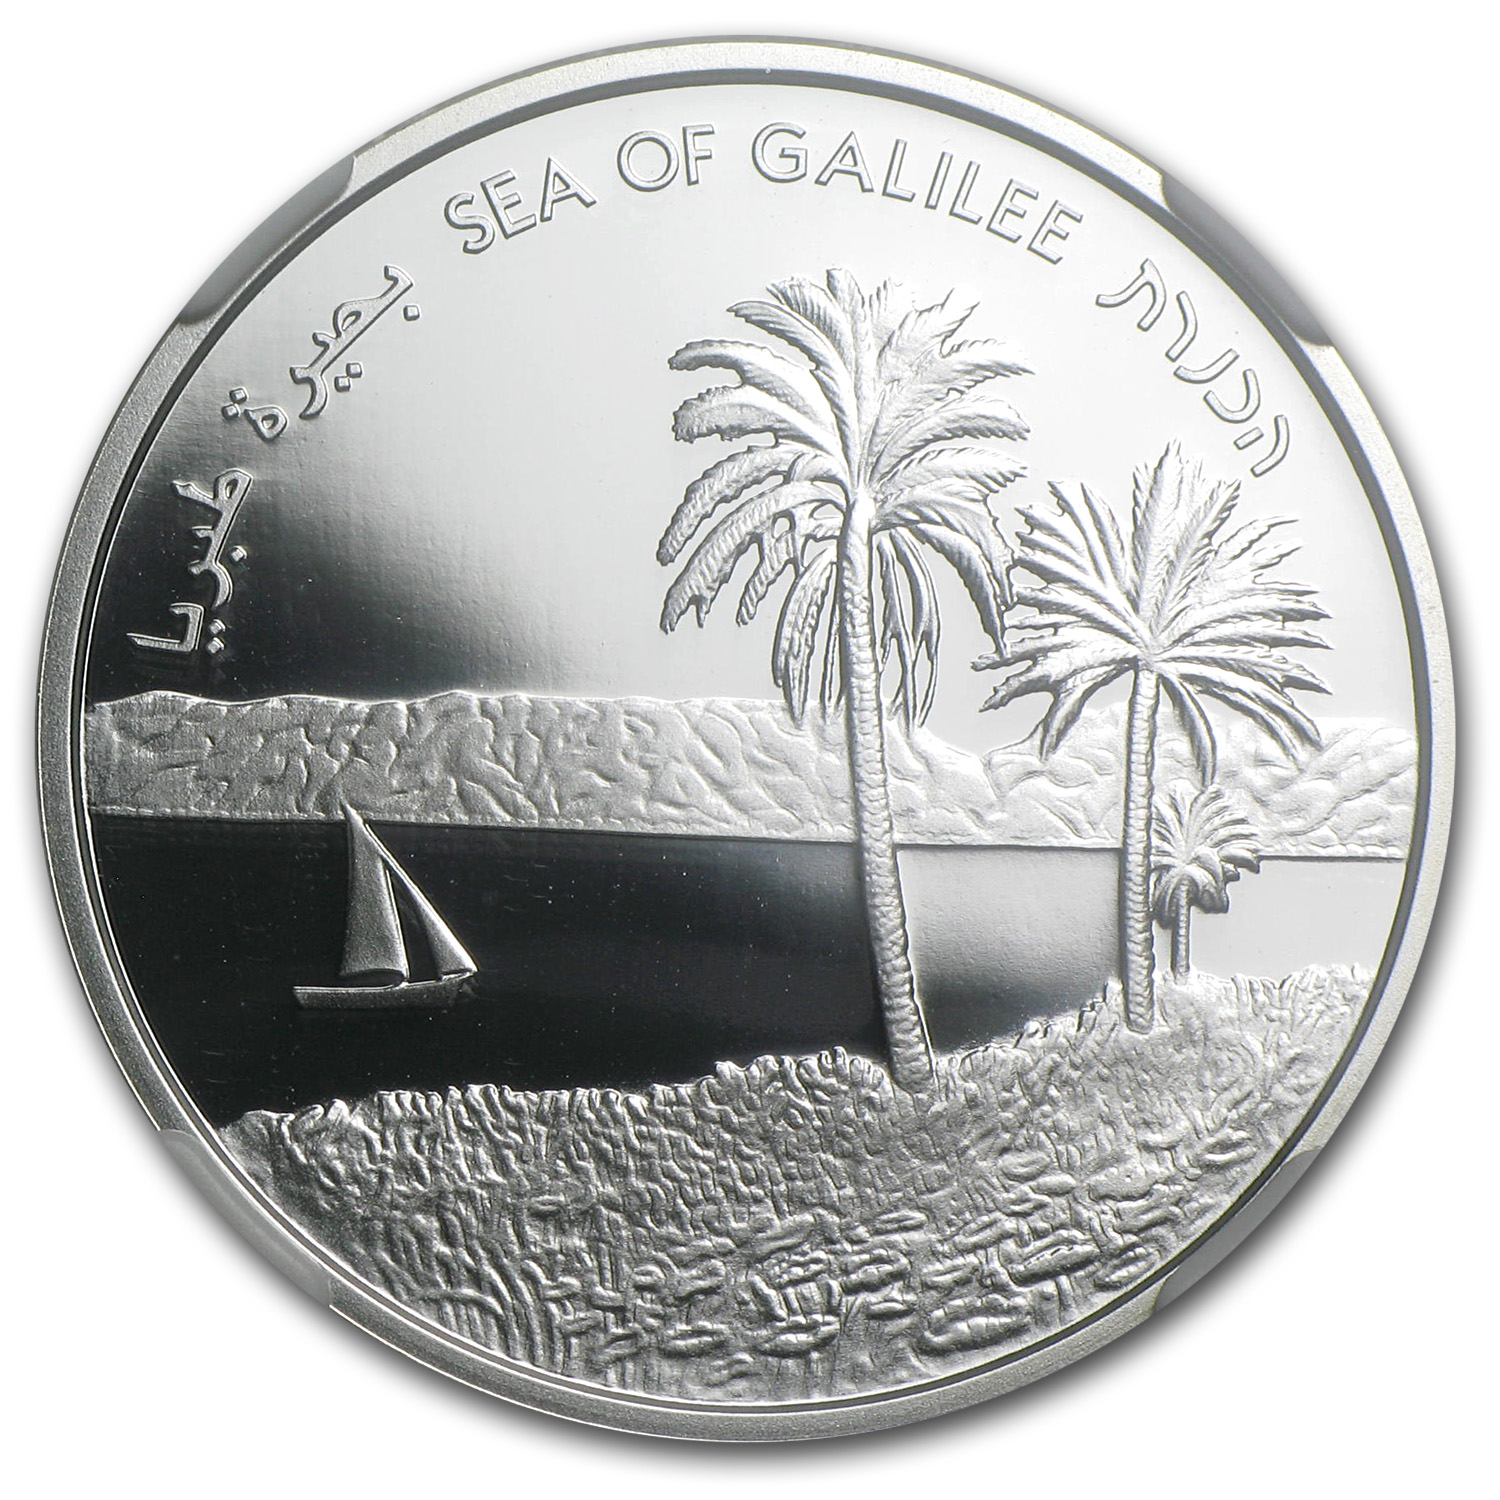 2012 Israel Silver 1 NIS Sea of Galilee MS-69 NGC